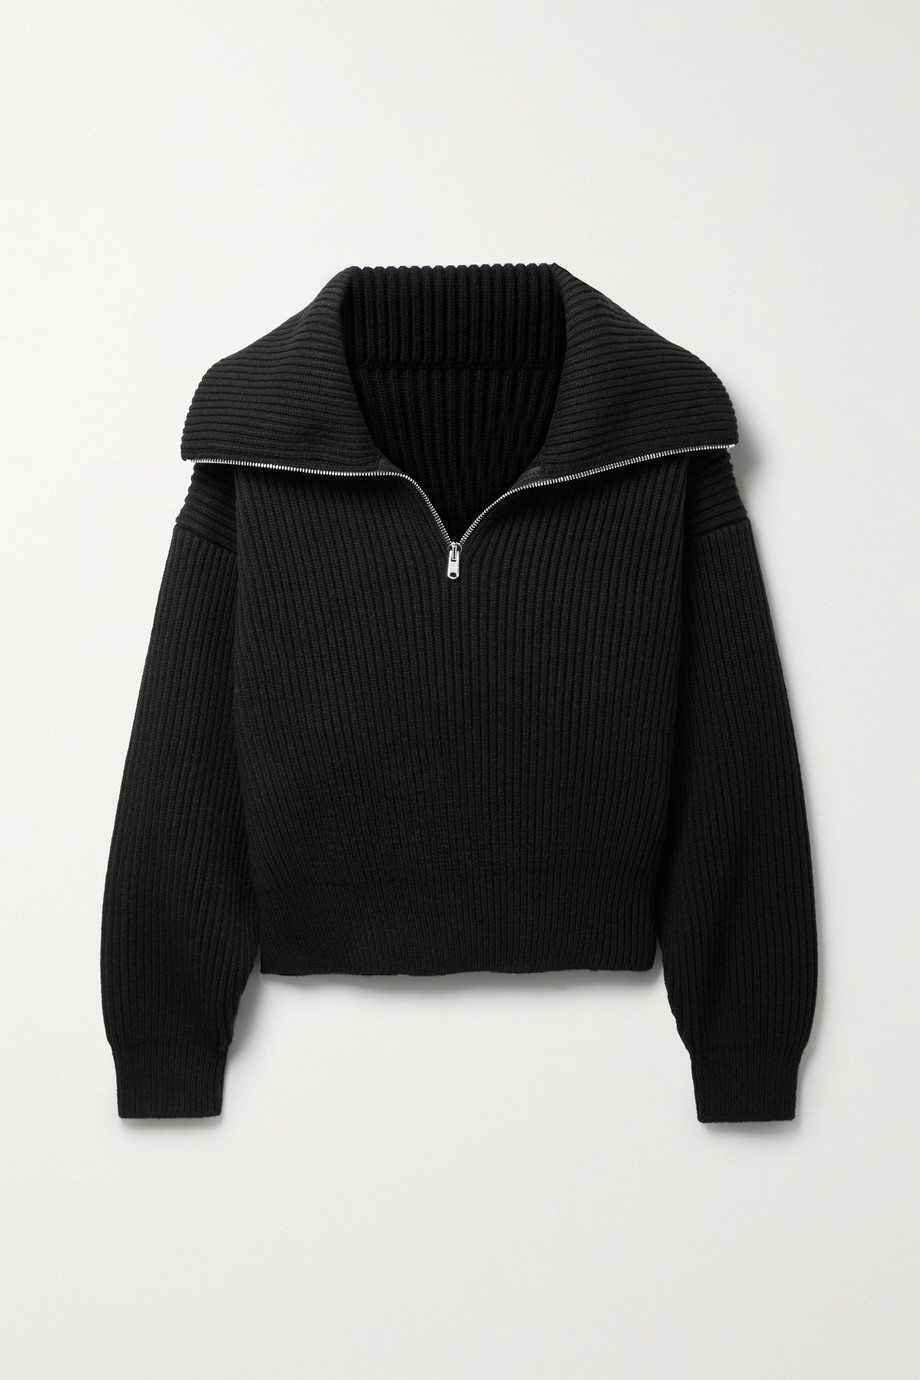 Alaïa Ribbed wool and cashmere-blend sweater